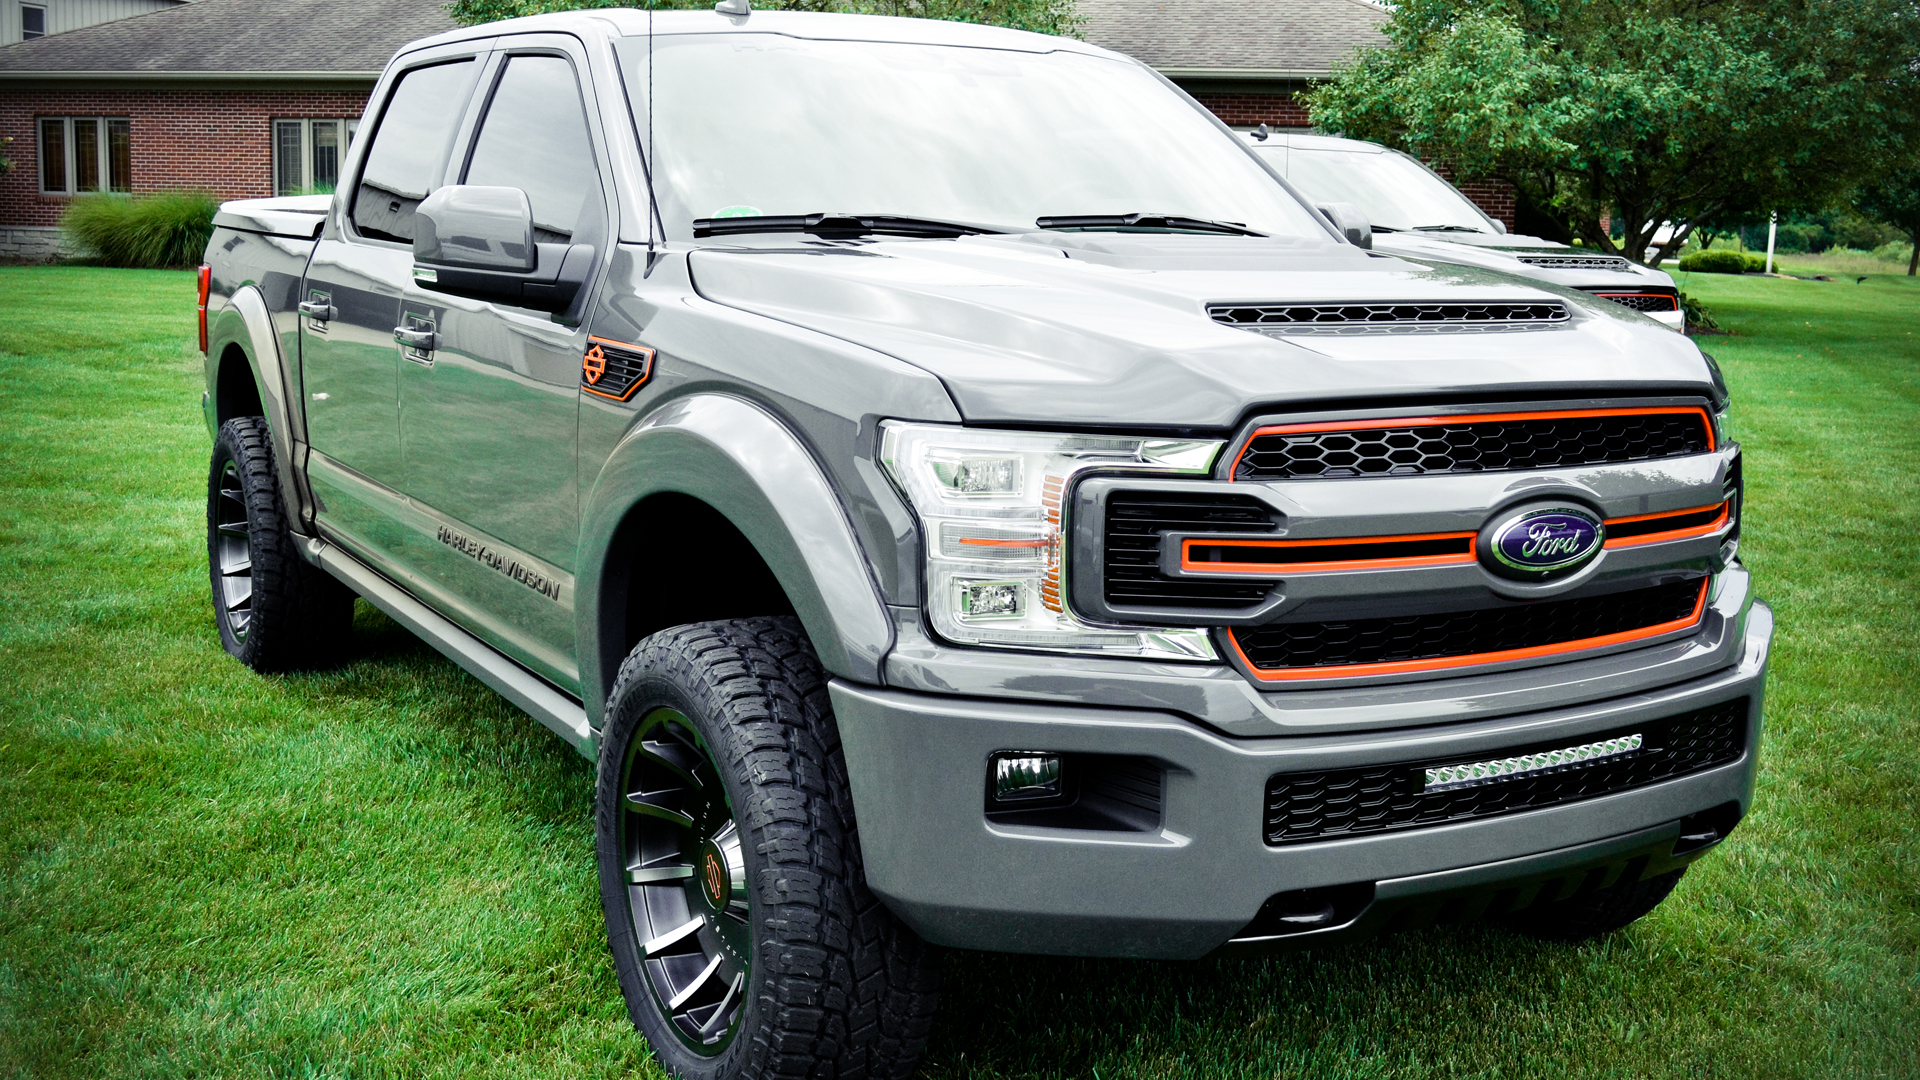 Harley-Davidson Motor Co. and Tuscany Motor Co. have introduced the 2019 Harley-Davidson F-150 pickup truck at the Chicago Auto